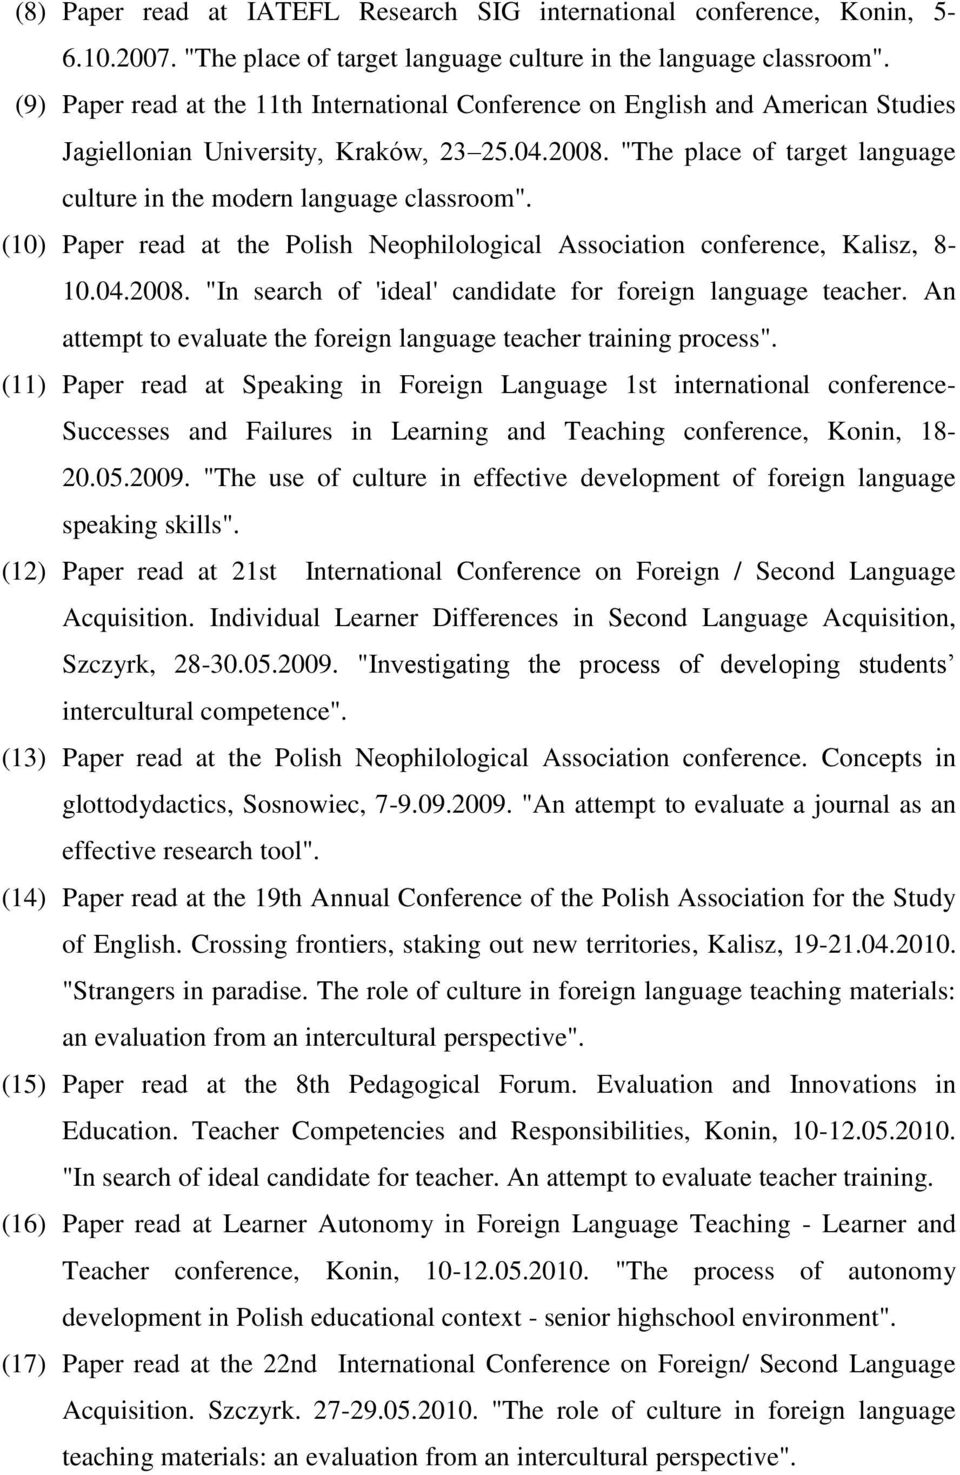 """The place of target language culture in the modern language classroom"". (10) Paper read at the Polish Neophilological Association conference, Kalisz, 8-10.04.2008."